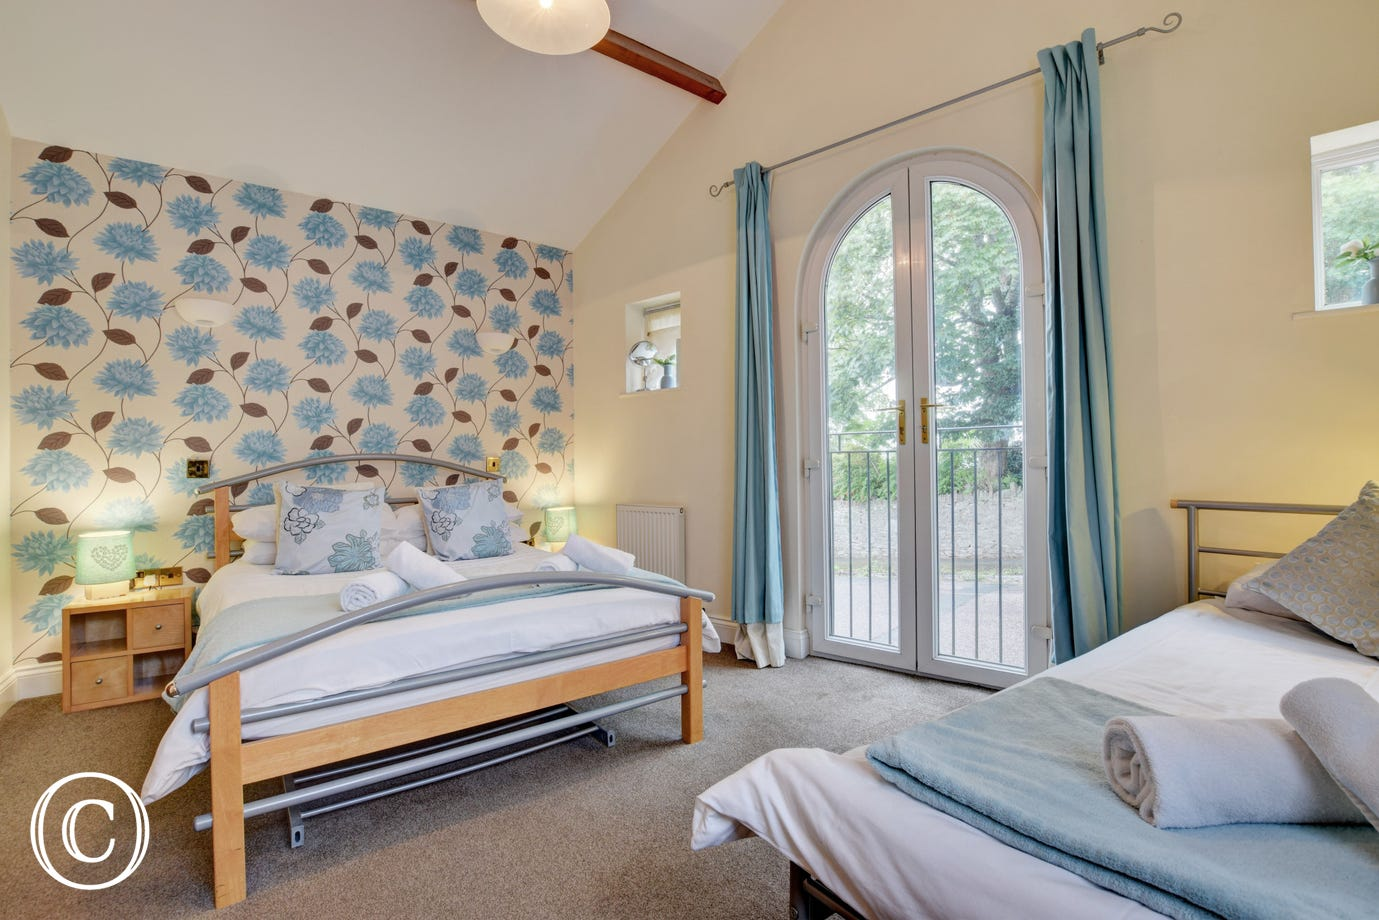 Sunnyhill Mews Holiday Cottage Torquay - Bedroom 2